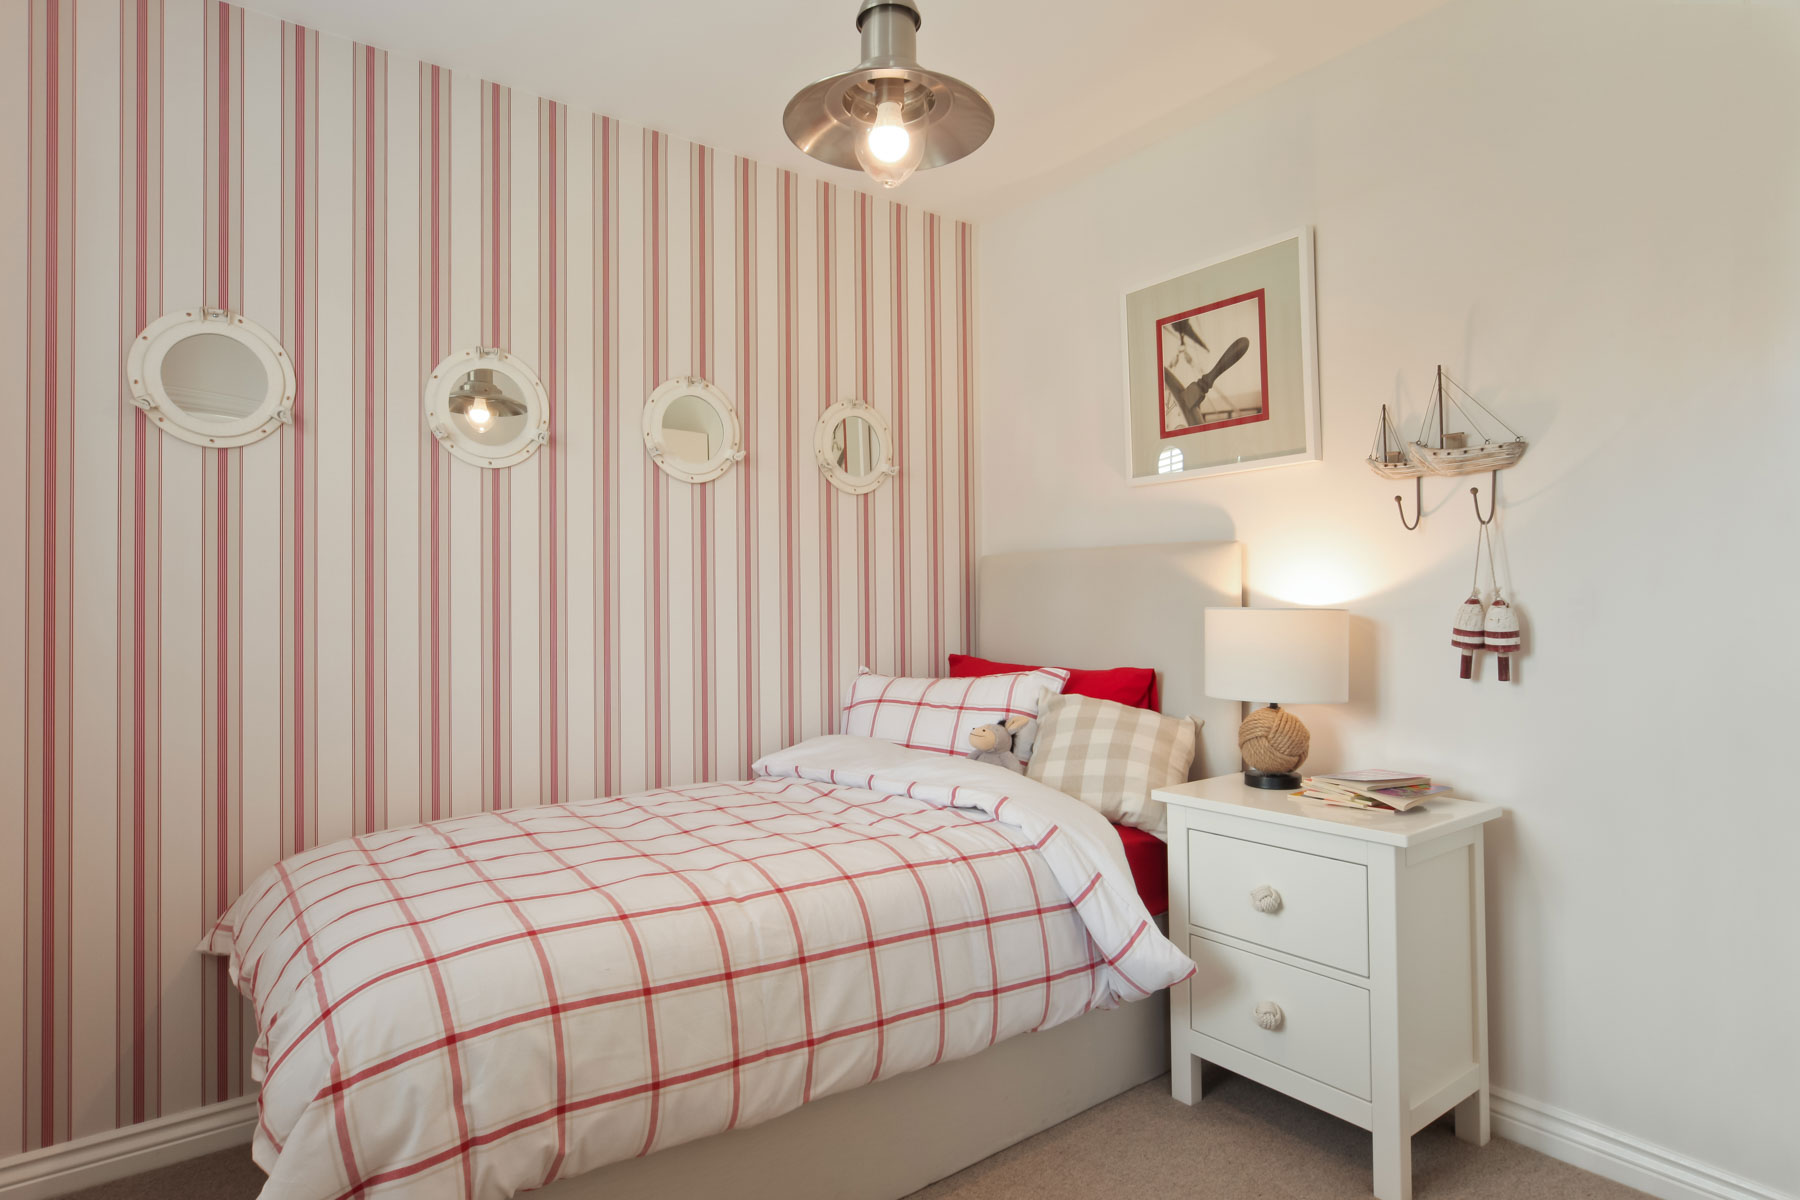 022_WV_Downham_Bedroom_4